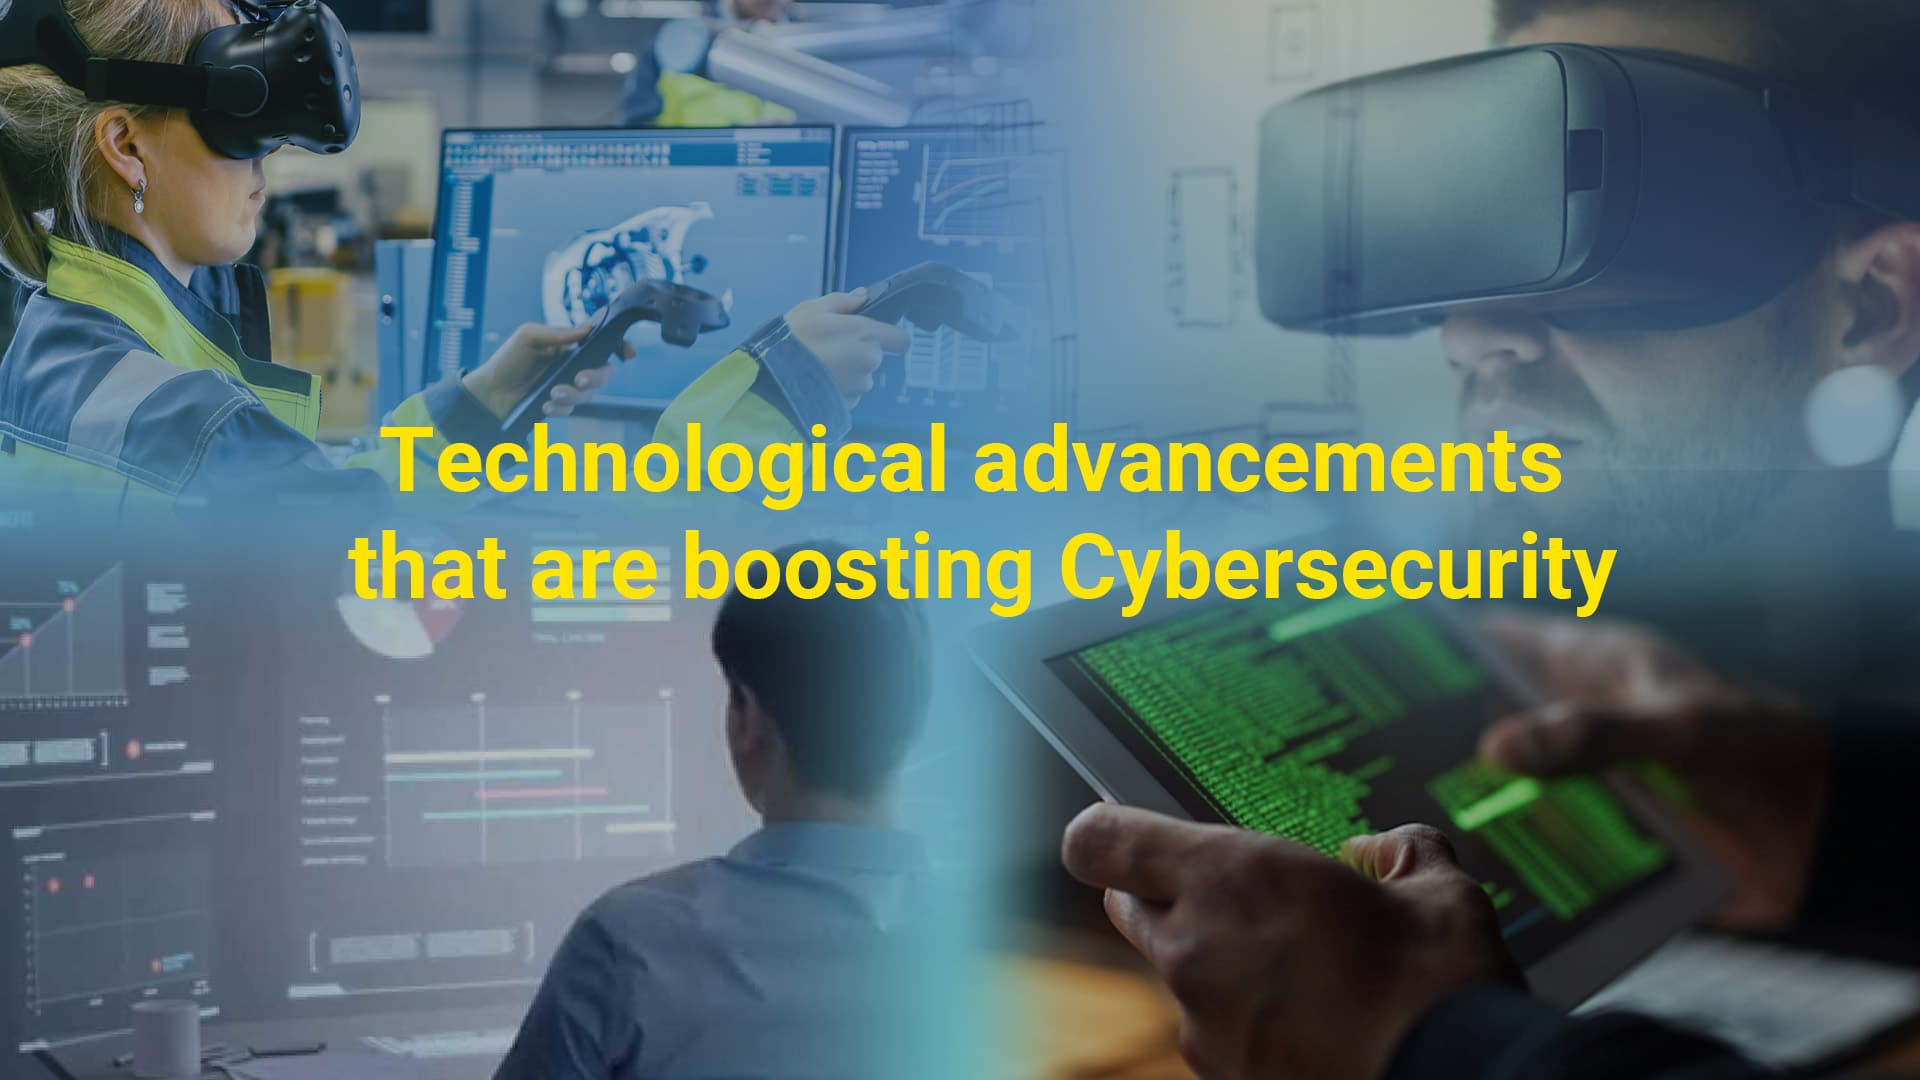 Technological advancements that are boosting Cybersecurity